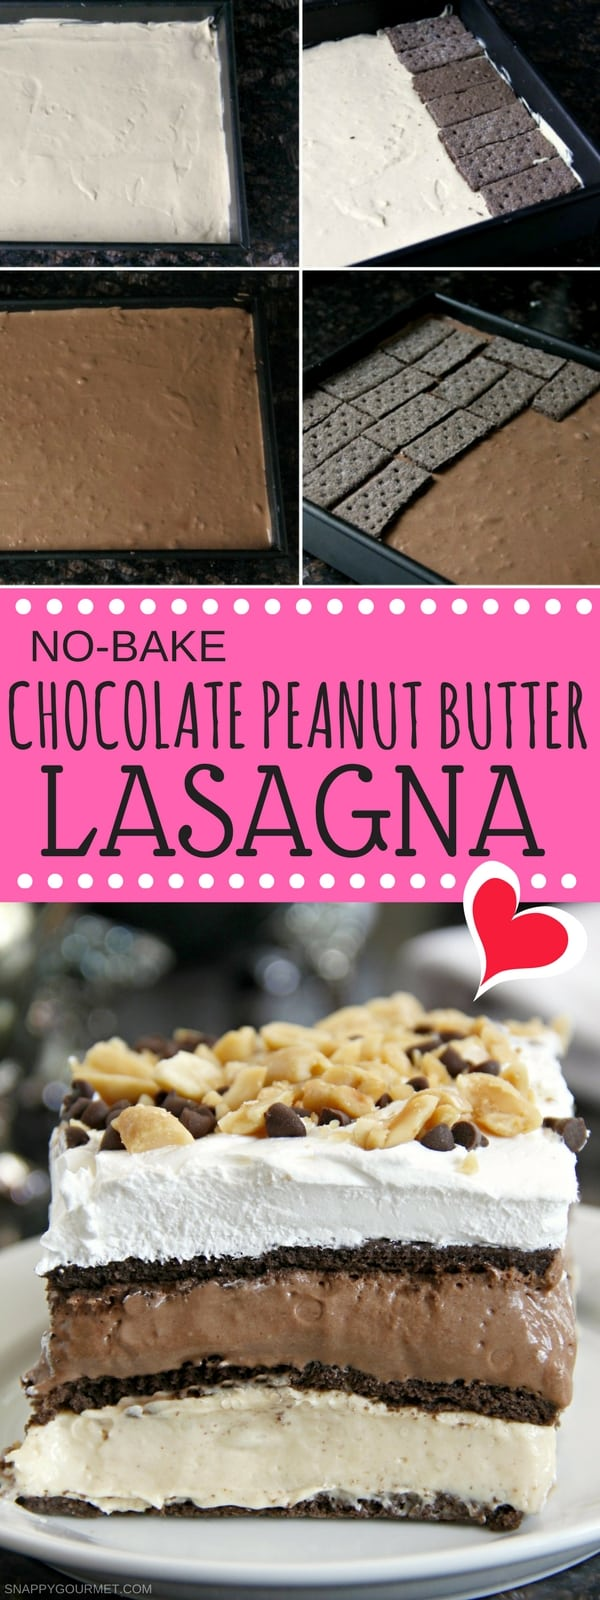 No Bake Chocolate Peanut Butter Lasagna recipe - an easy refrigerator cake or graham cracker cake recipe with a layer of chocolate and a layer of peanut butter. SnappyGourmet.com